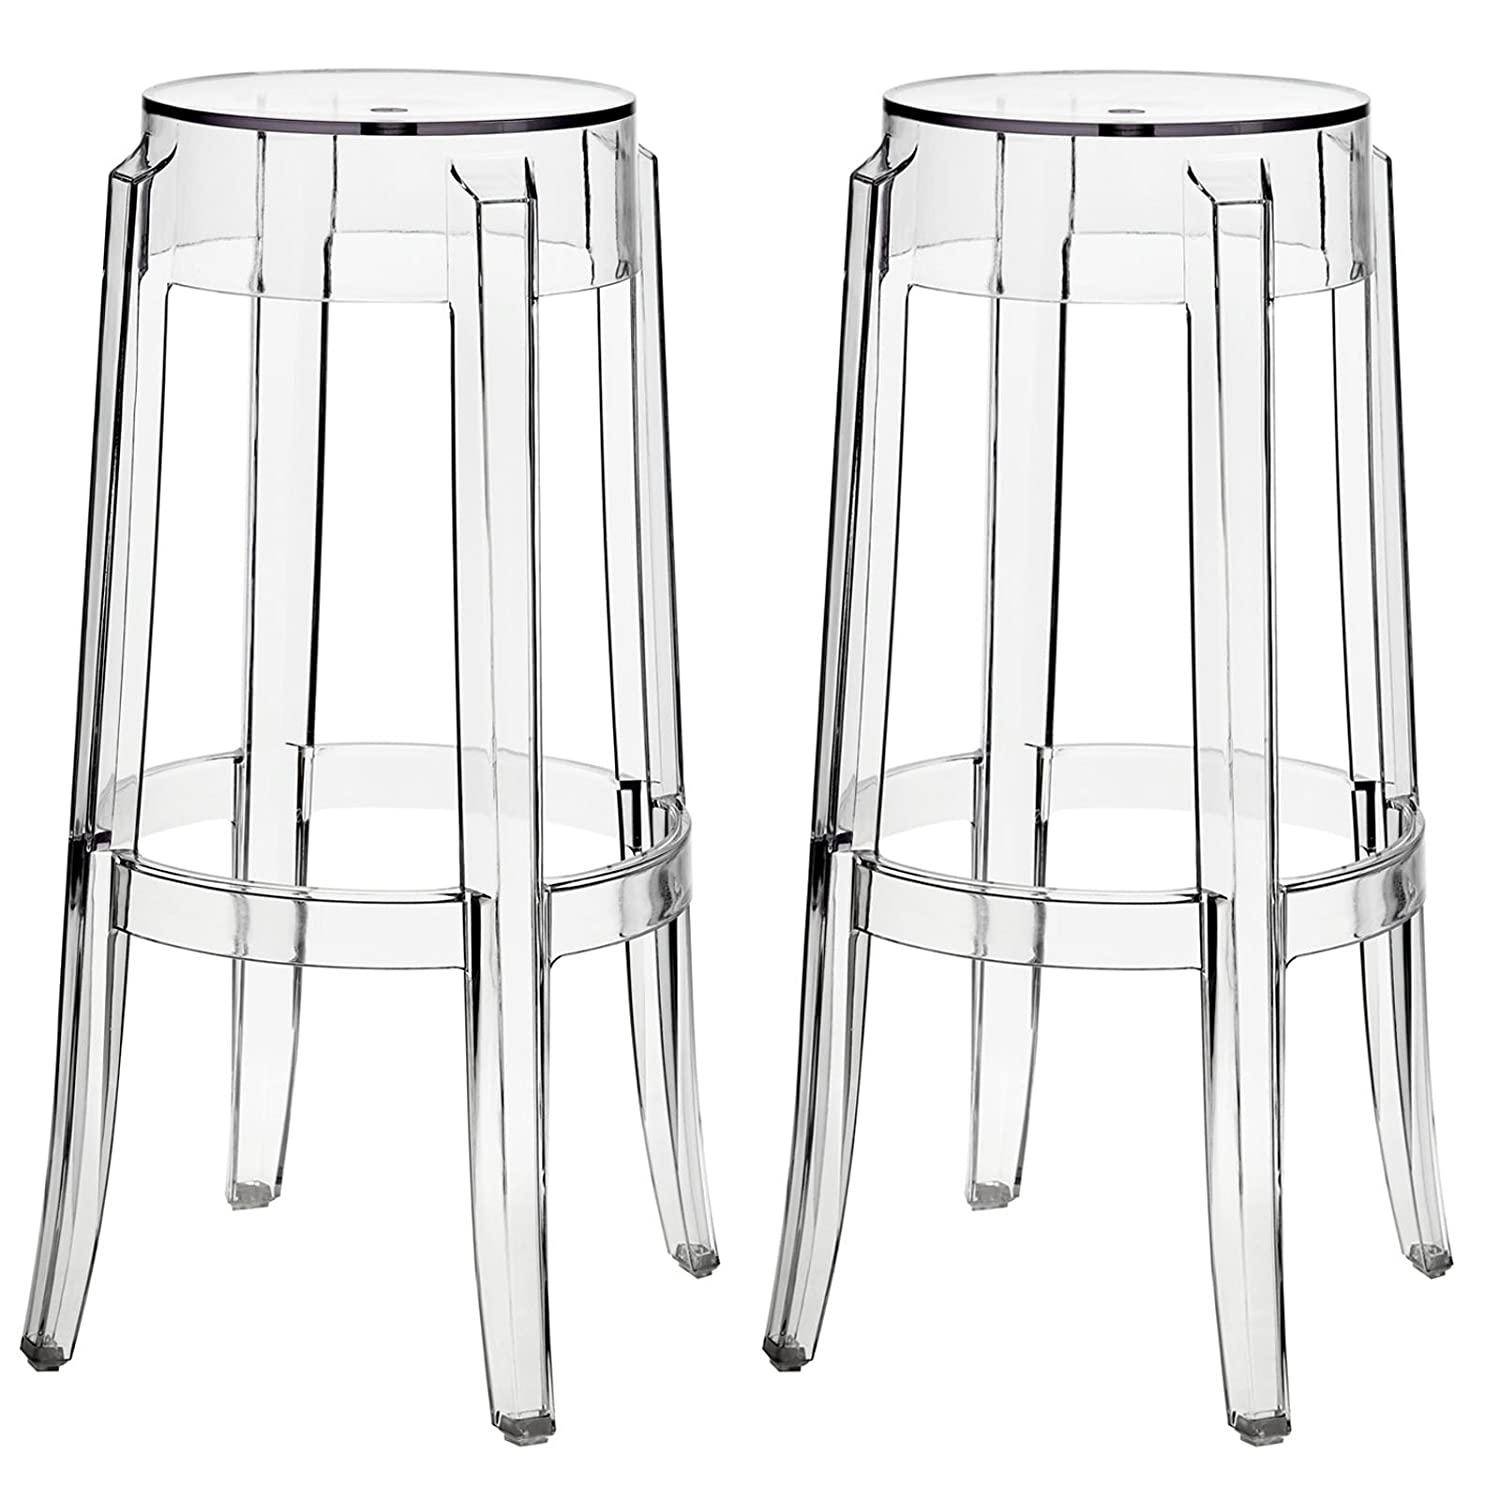 Acrylic Barstool Amazoncom Modway Casper Bar Stools Set Of 2 In Clear Kitchen